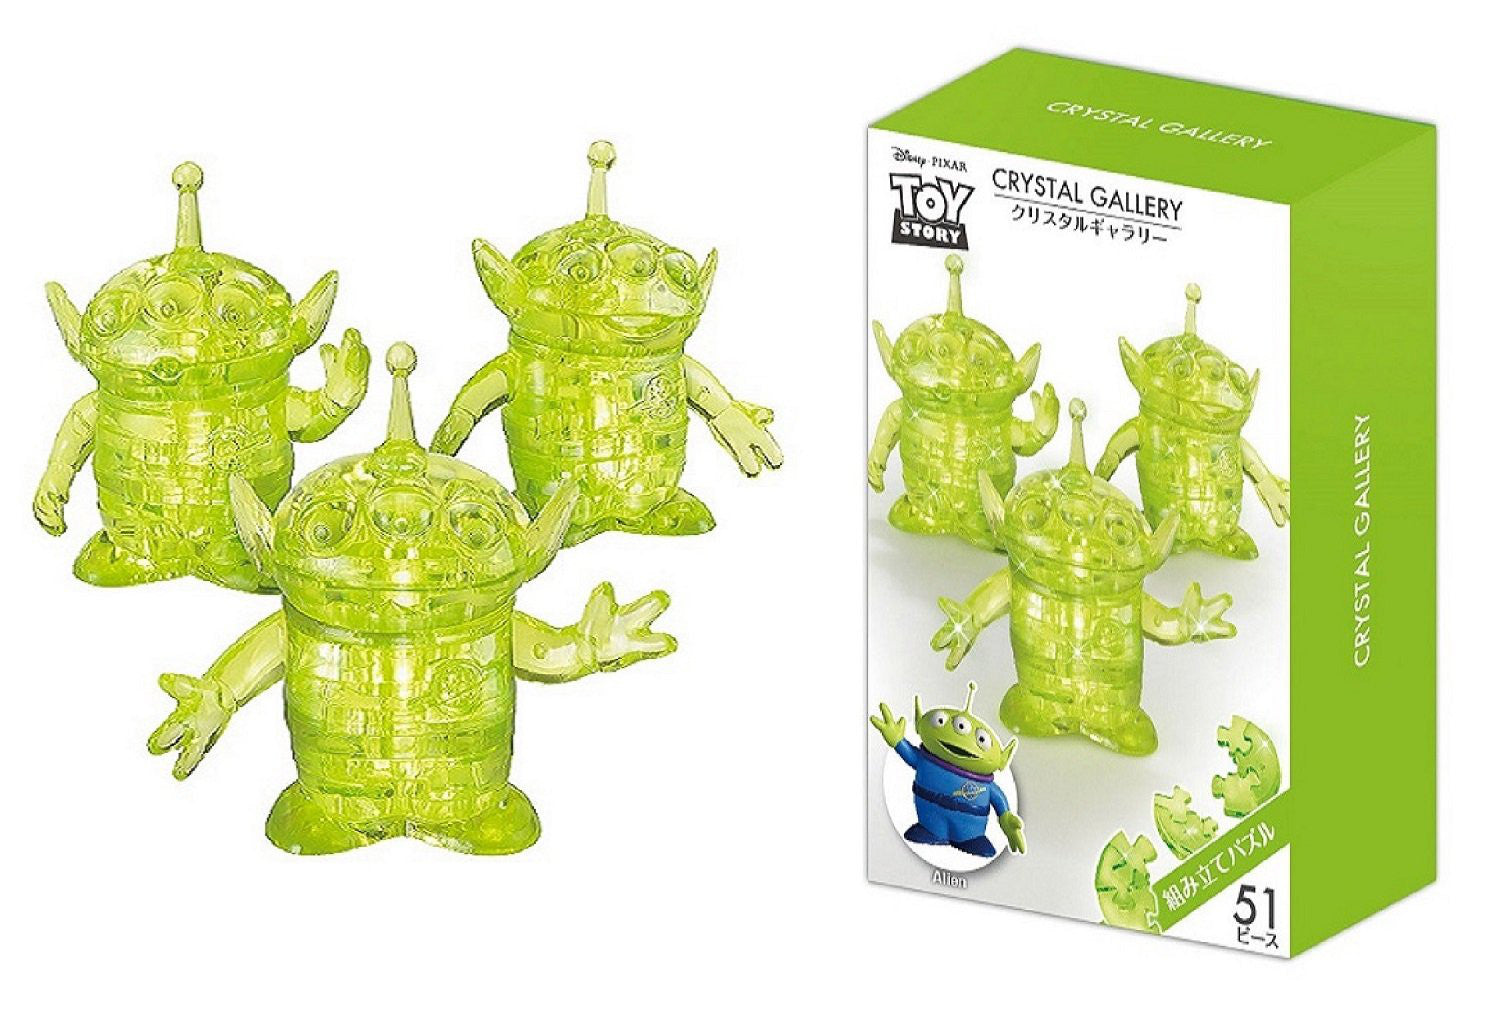 3D Puzzle Crystal Gallery Toy · Story Friends